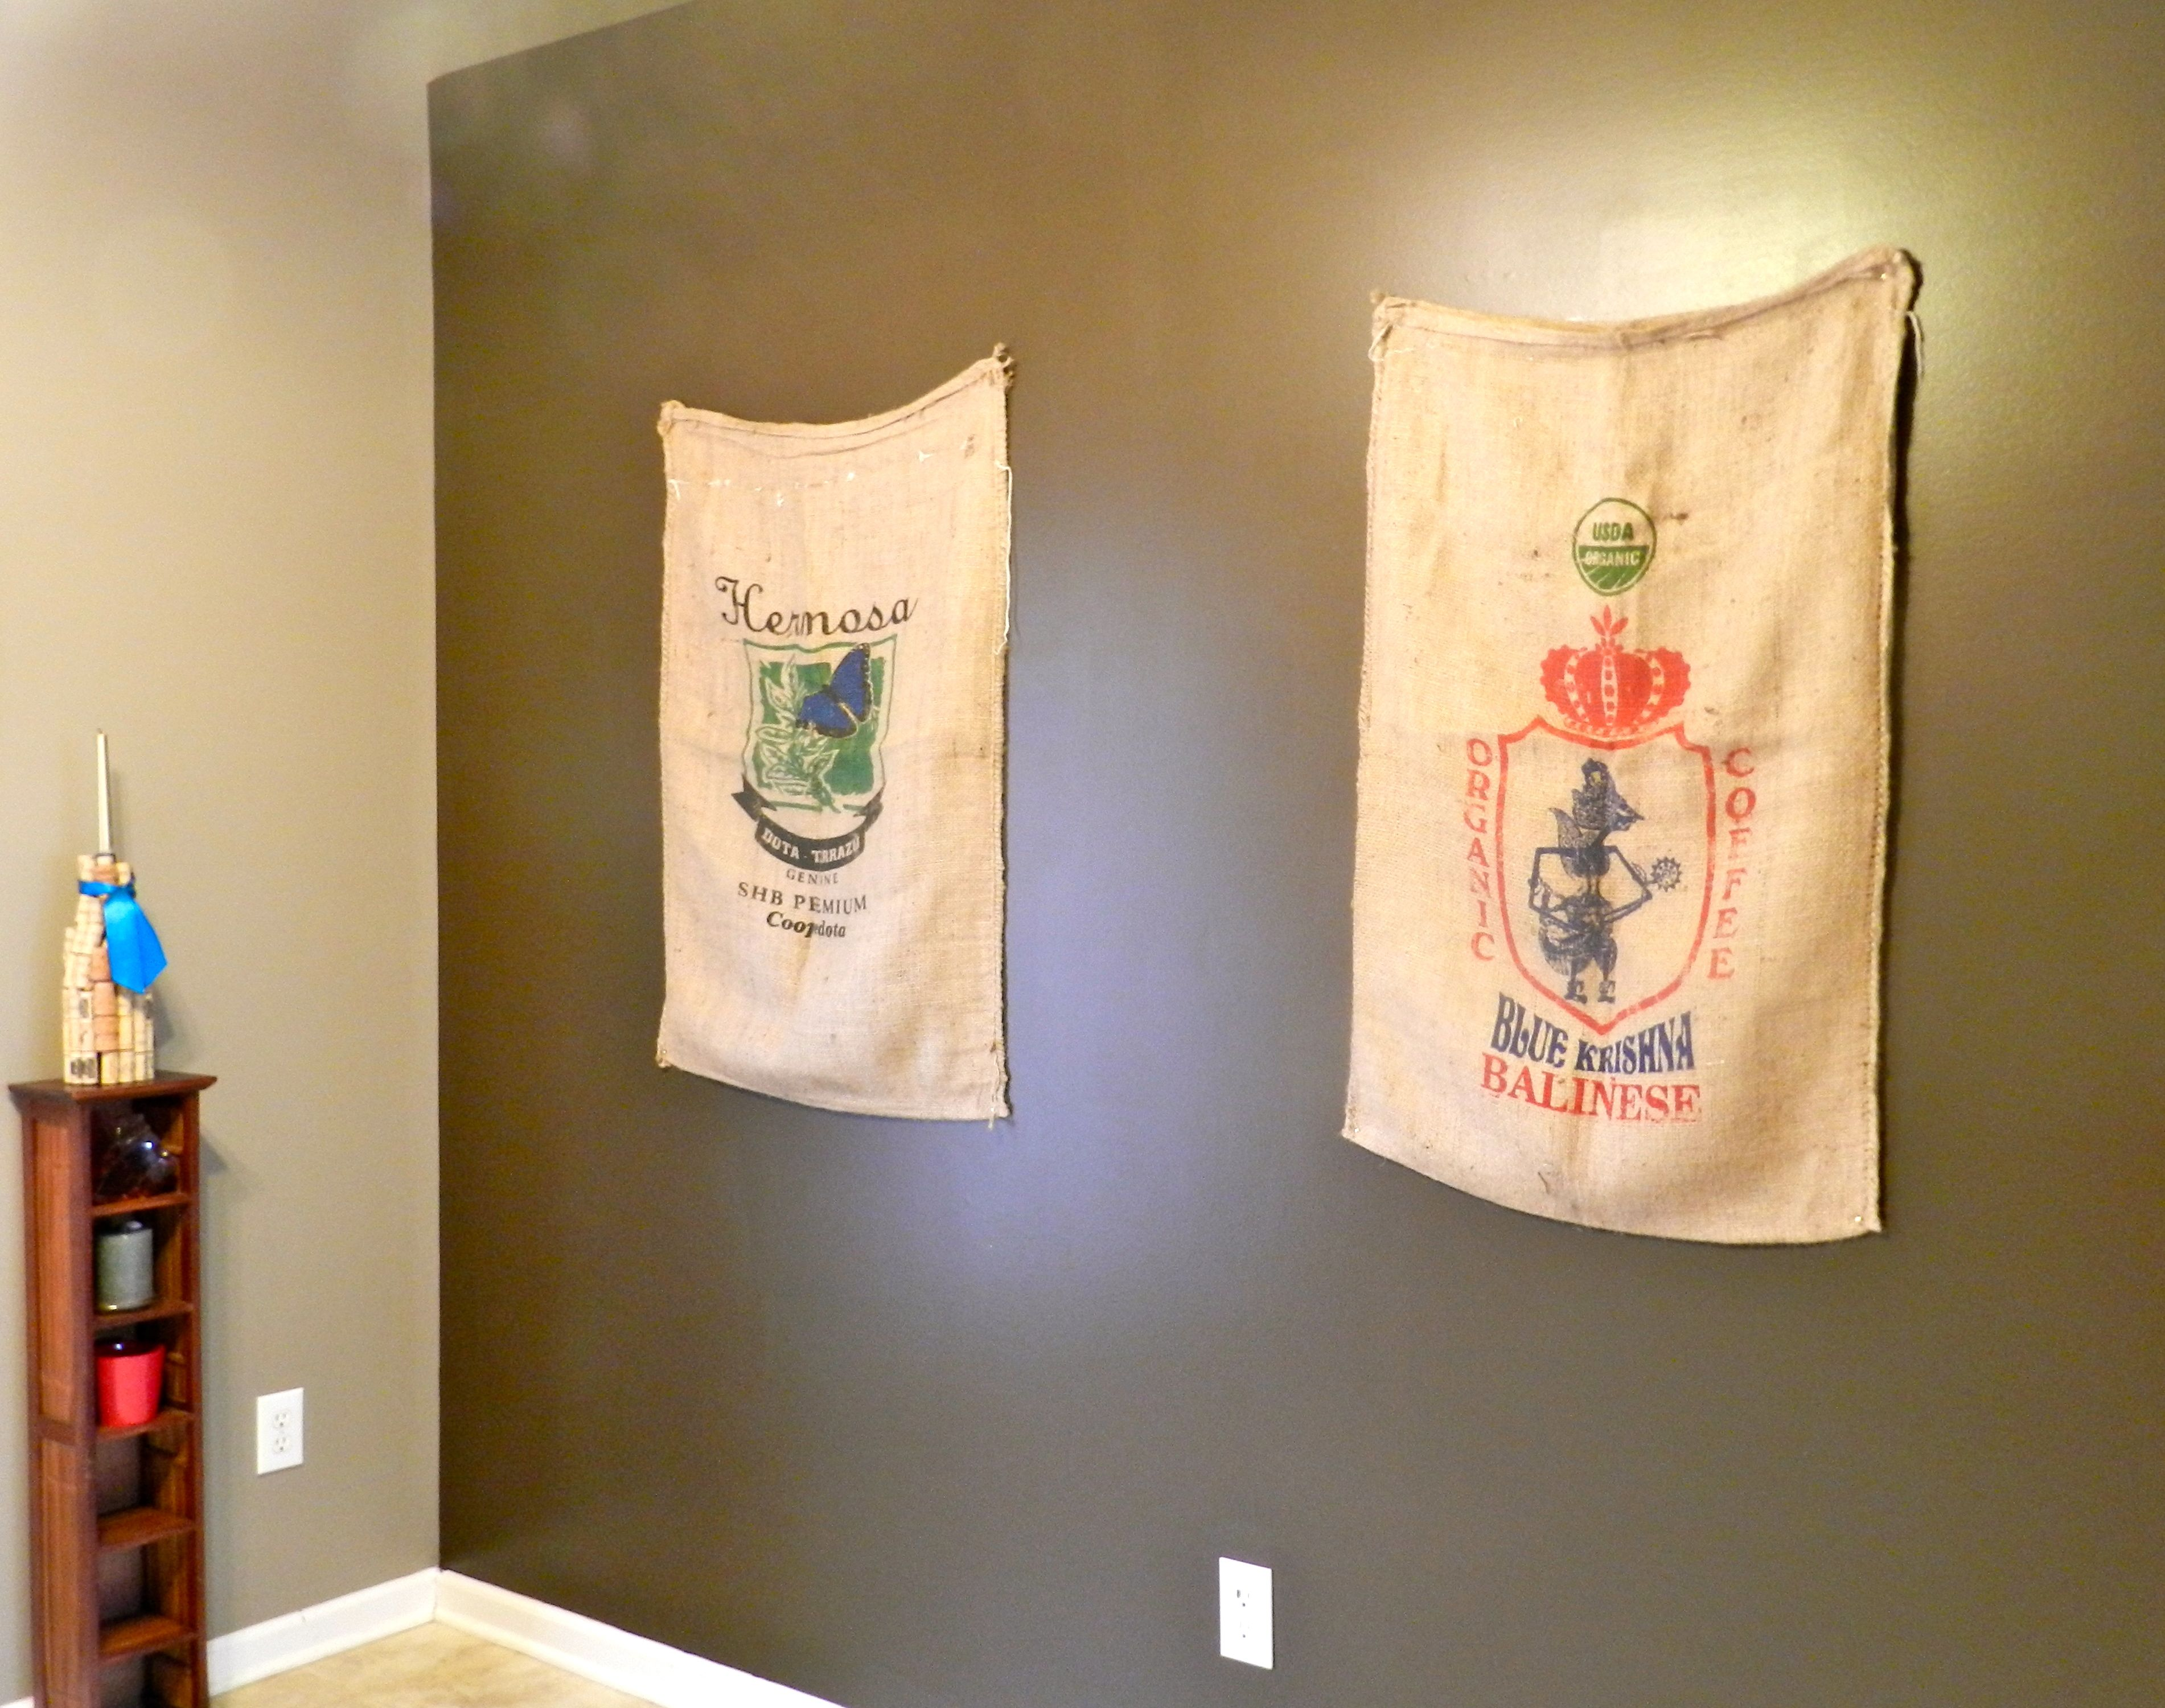 We got these coffee bags in north Florida on our honeymoon. They are hanging in the kitchen. I love this style!